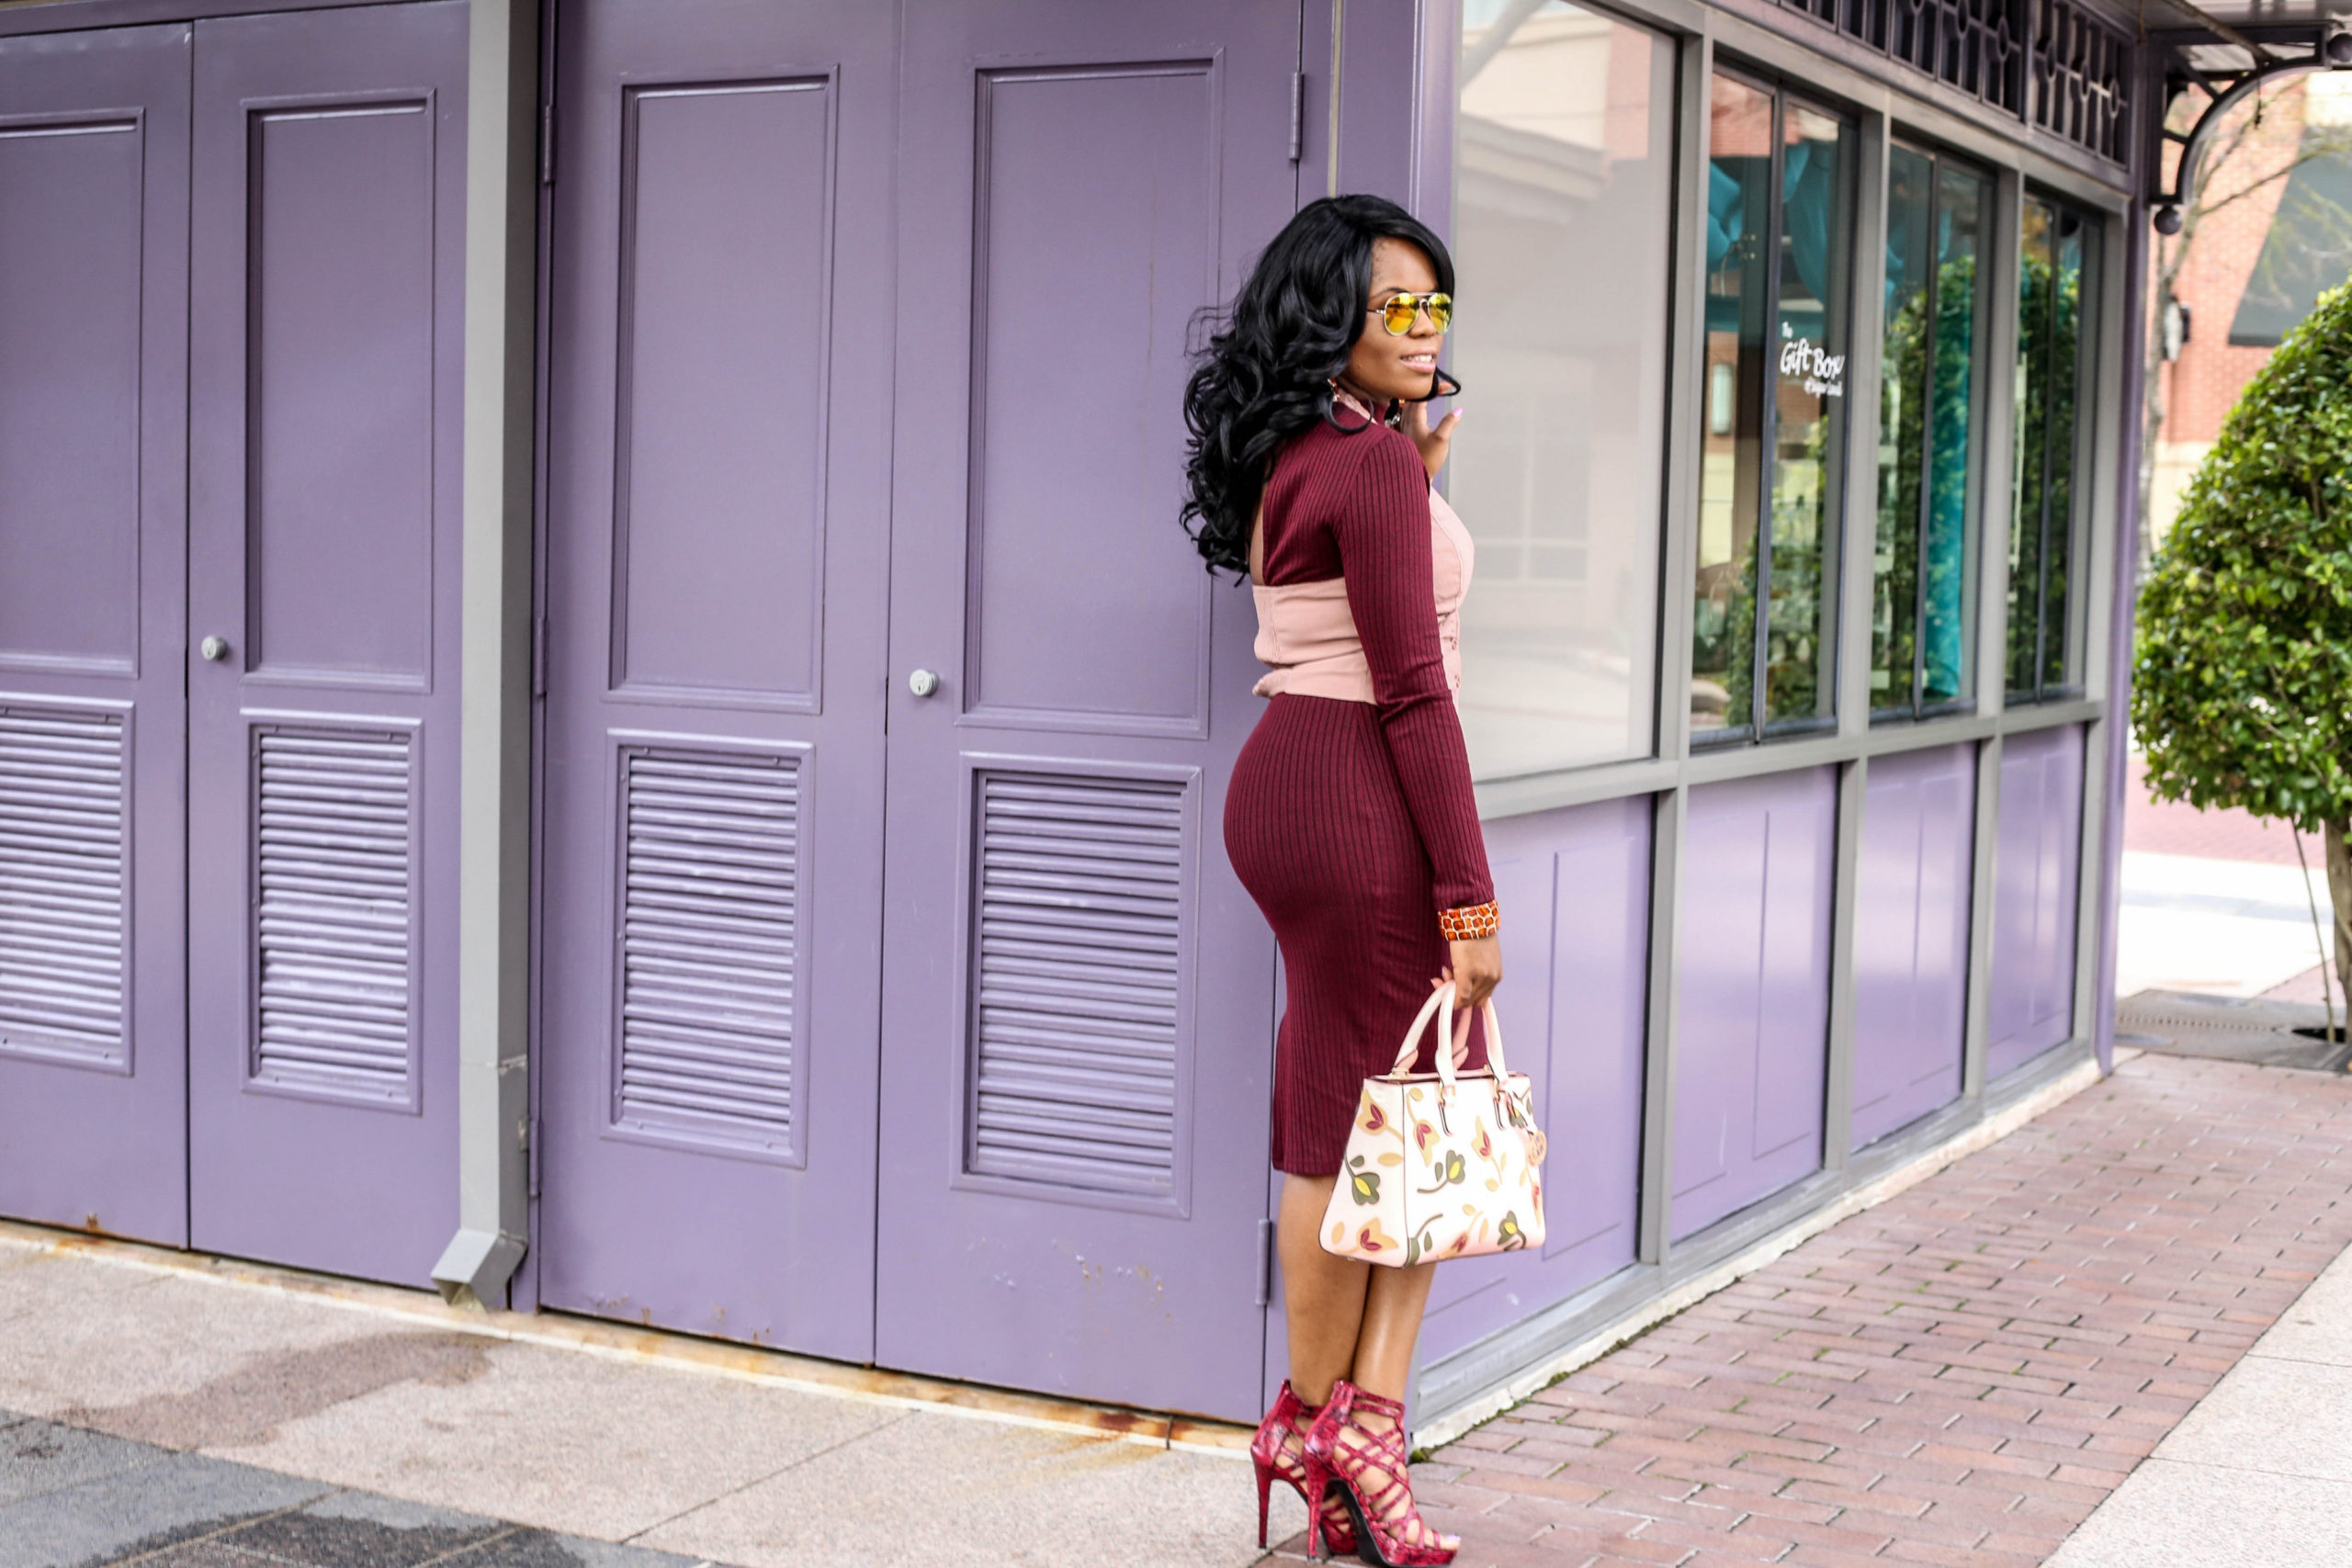 Red Knit Dress + Blush Pink Vest AGACI Burgundy Bodycon Midi Dress Blush Halter Waistcoat West 57th Floral Turnlock Satchel Handbag by Henri Bendel Red Linnie Animal Print Shoedazzle Heels Kenyan Kandy African Print Jewelry